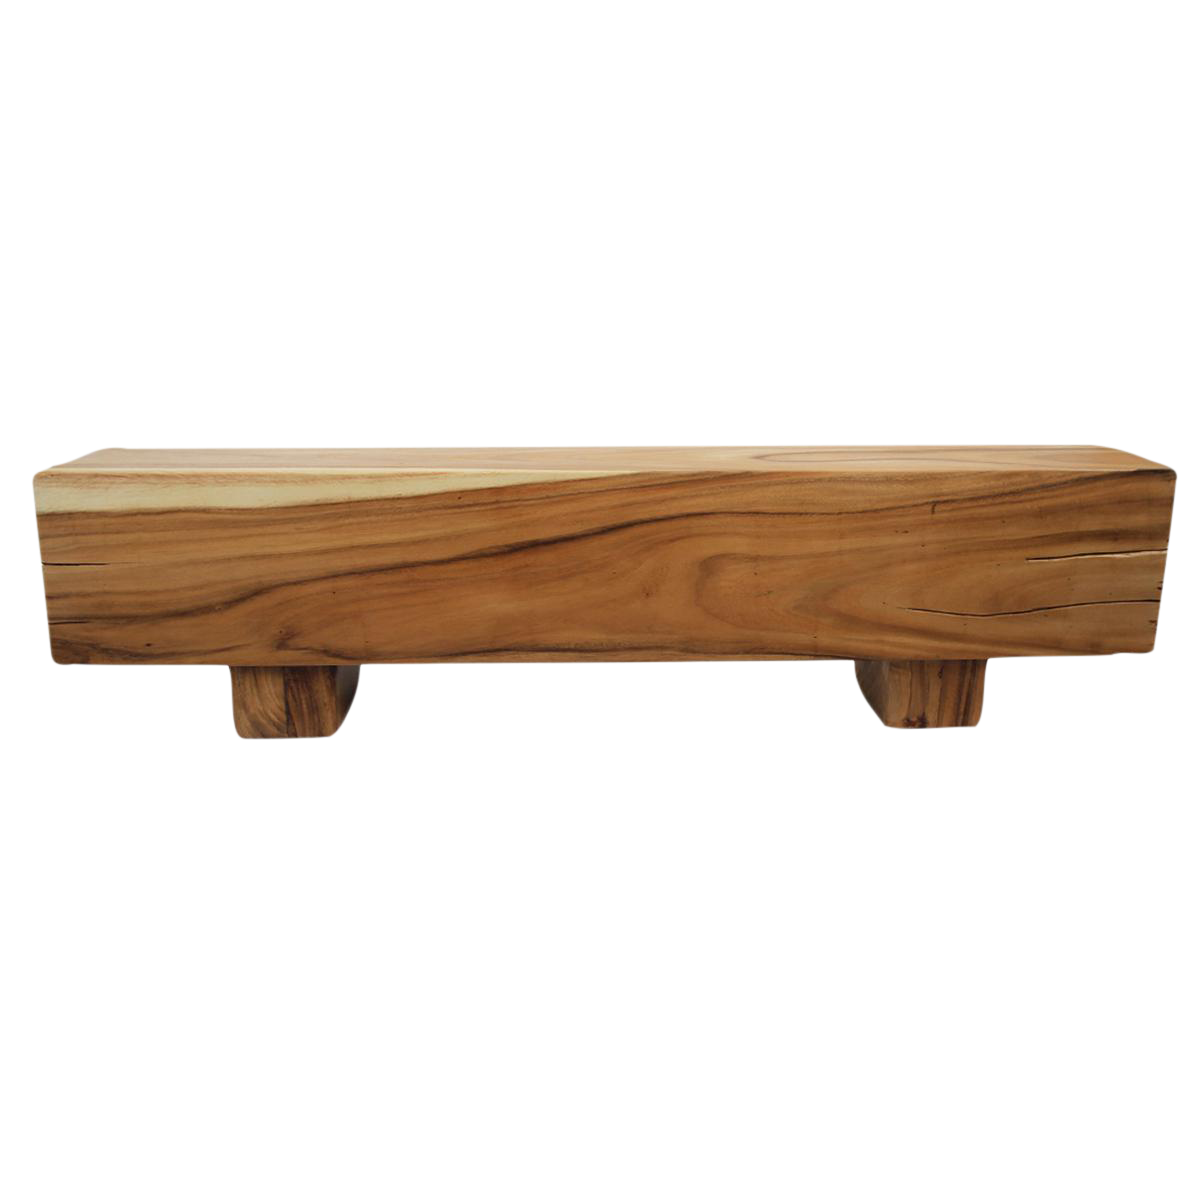 Modern Saur Wood Block Bench Chairish